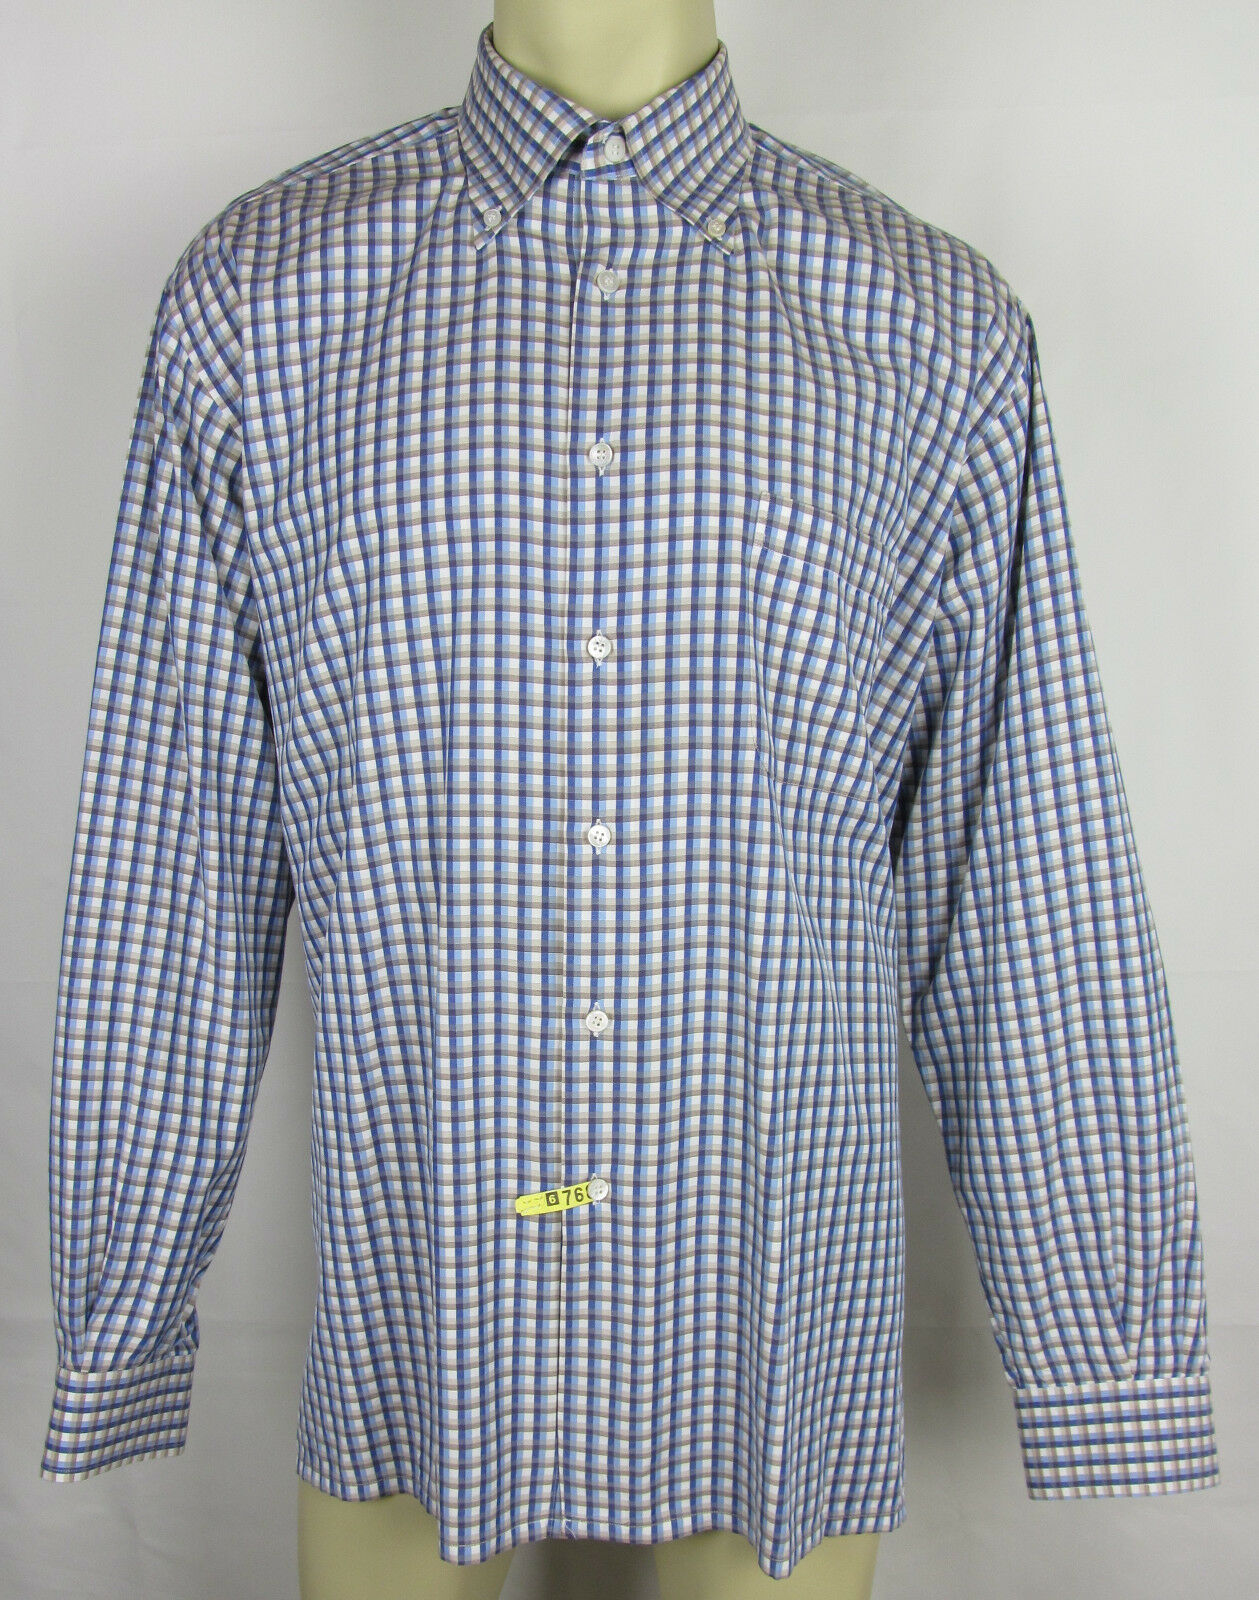 Cifonelli dress hemd long sleeve button front  Checkerot herren Größe XXL 2XL